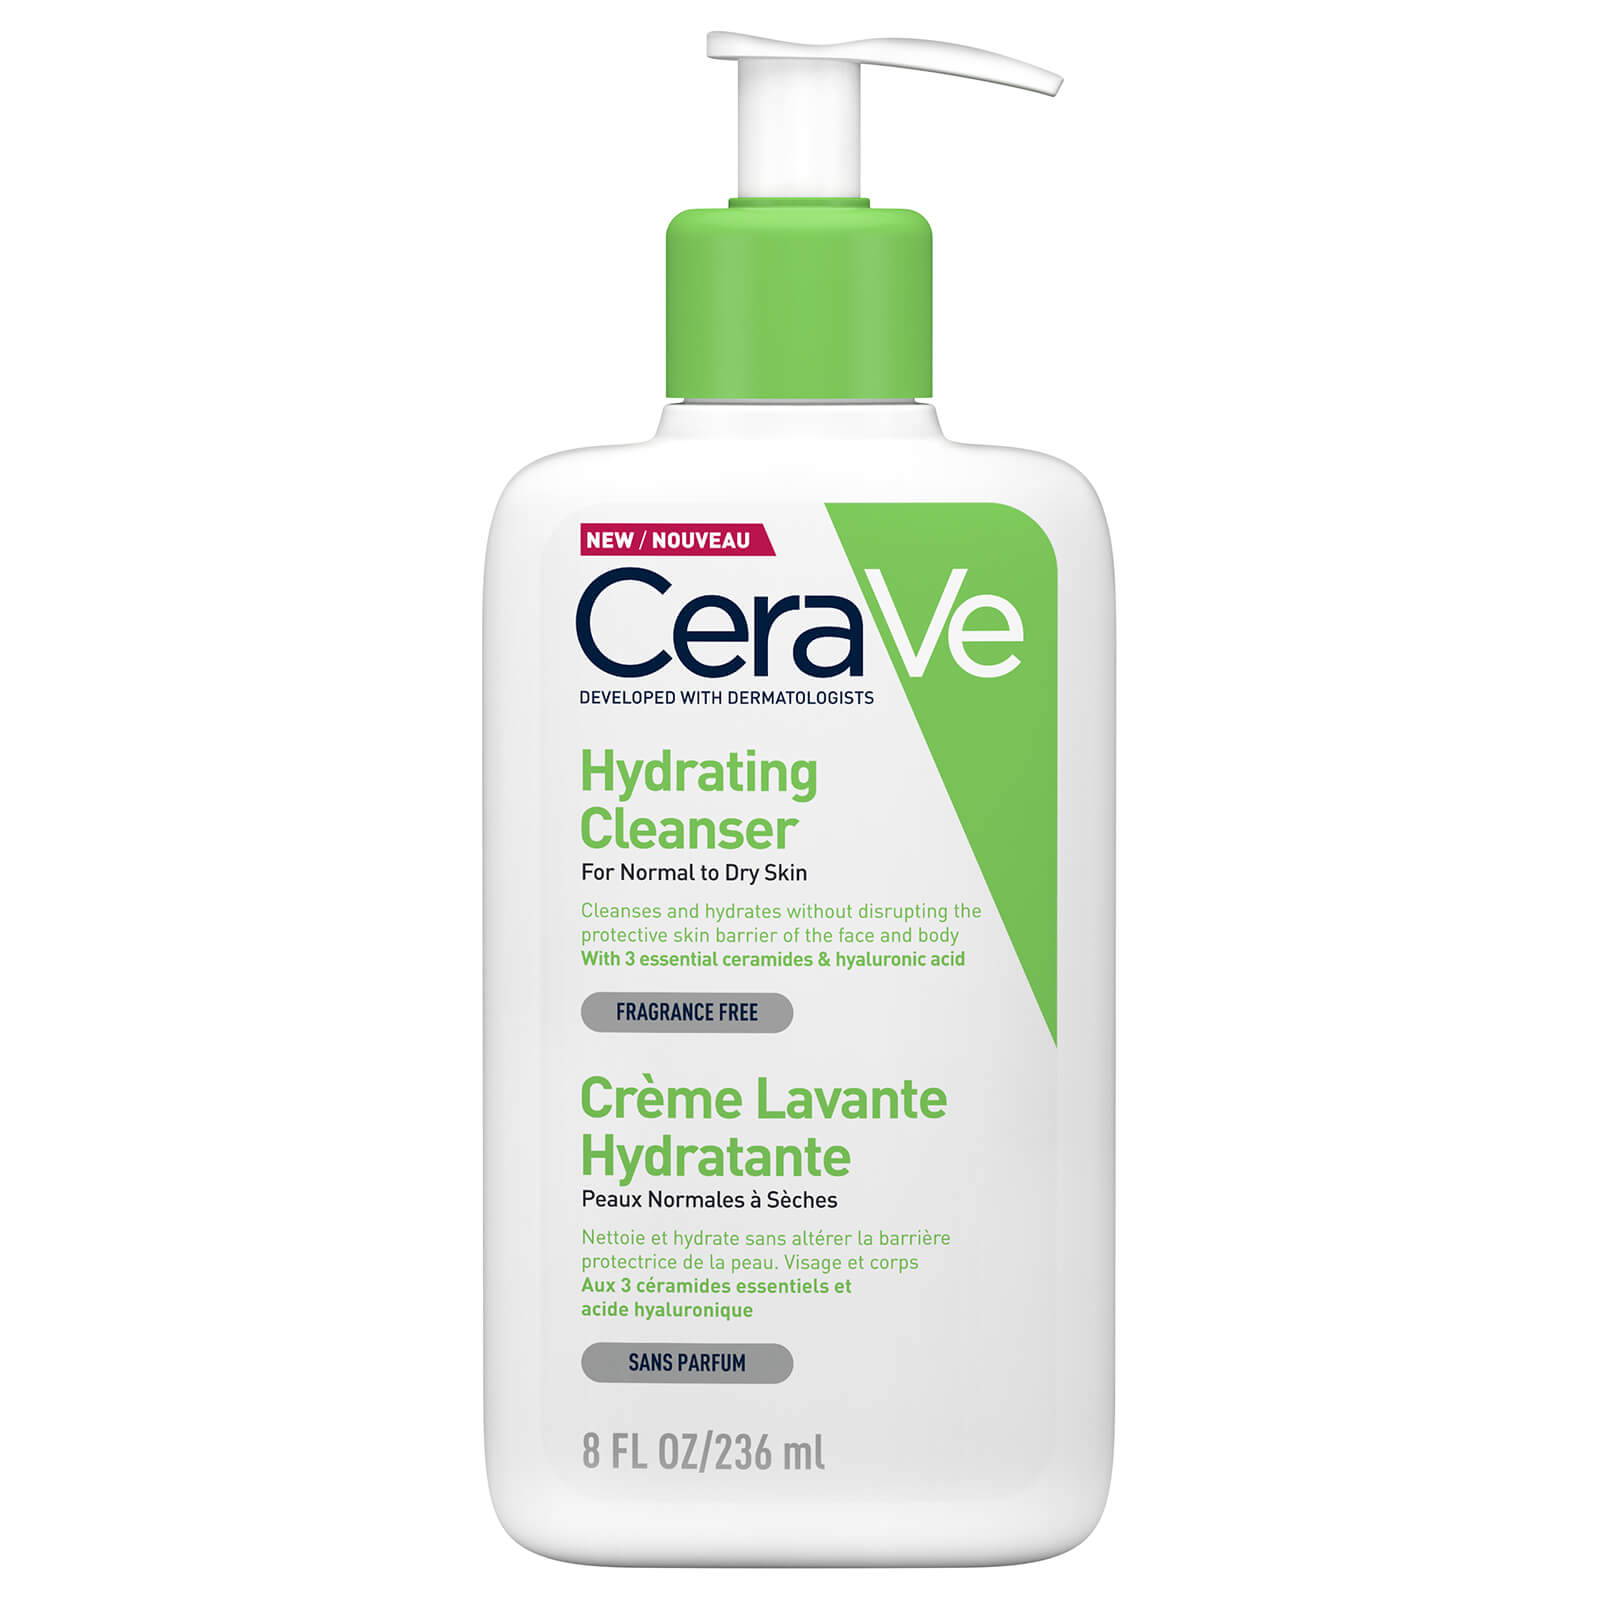 https://www.boots.com/cerave-hydrating-cleanser-236ml-10246701-